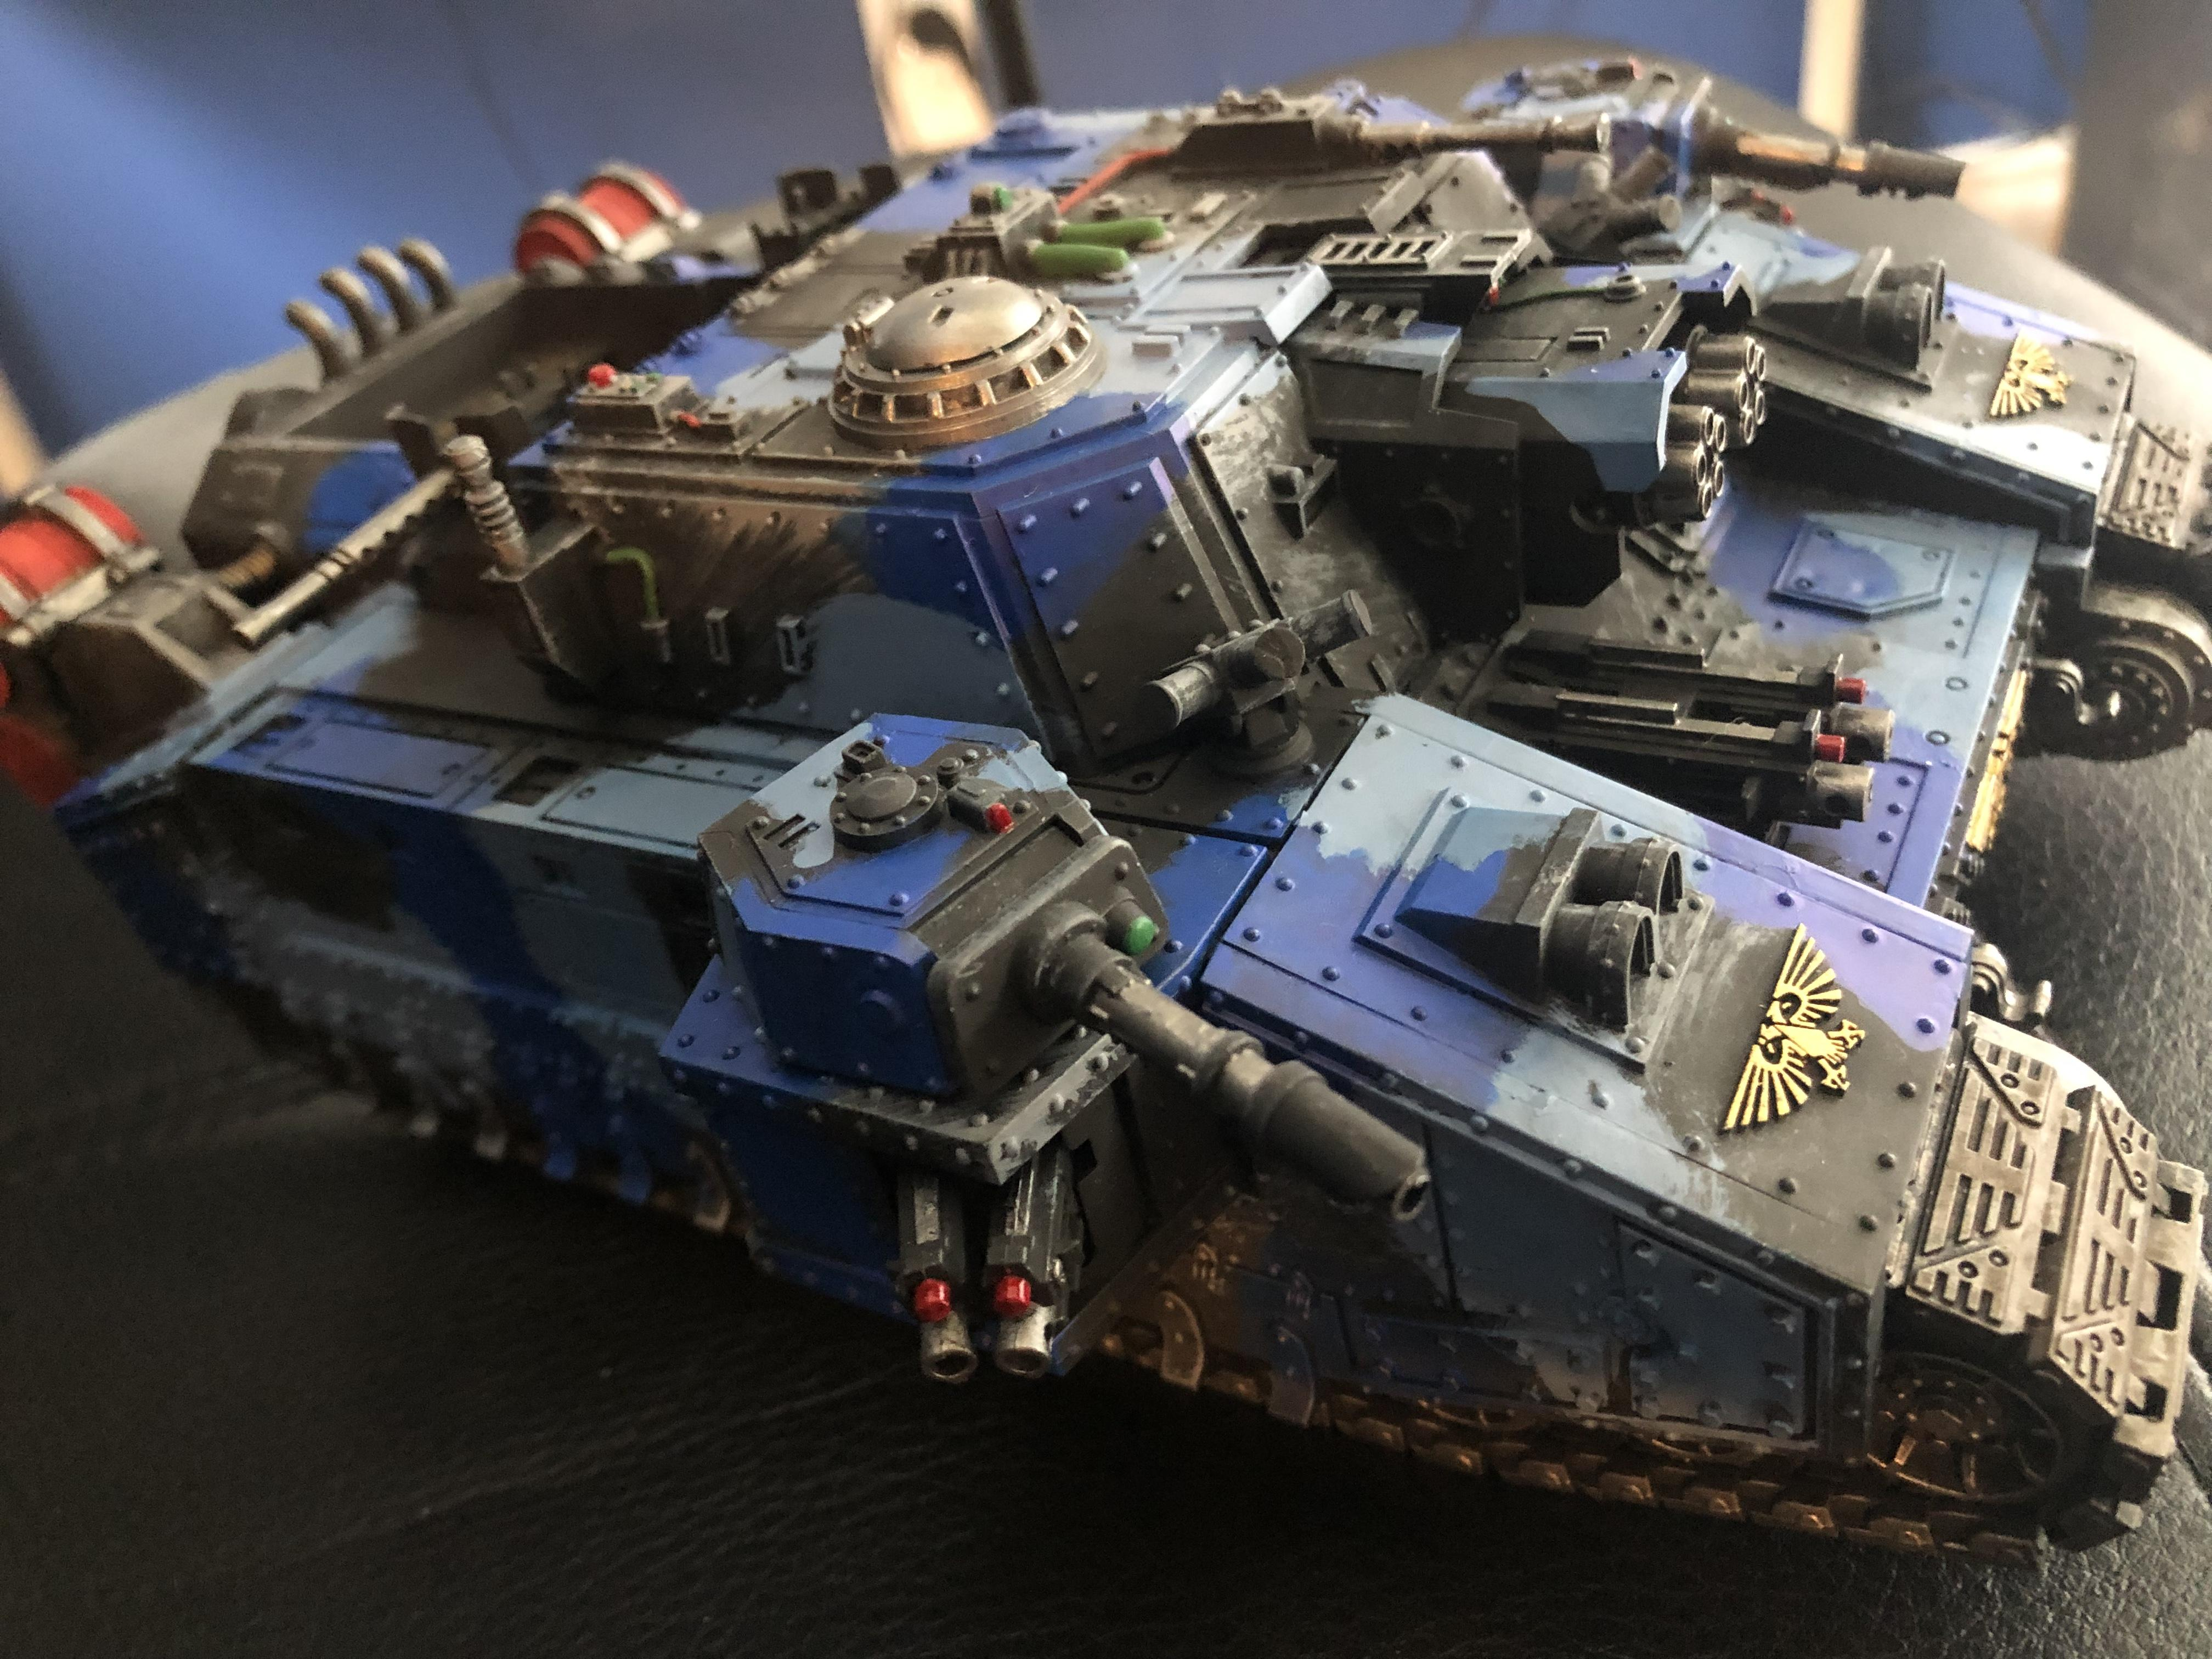 Astra Militarum, Imperial Guard, Stormlord, Warhammer 40,000